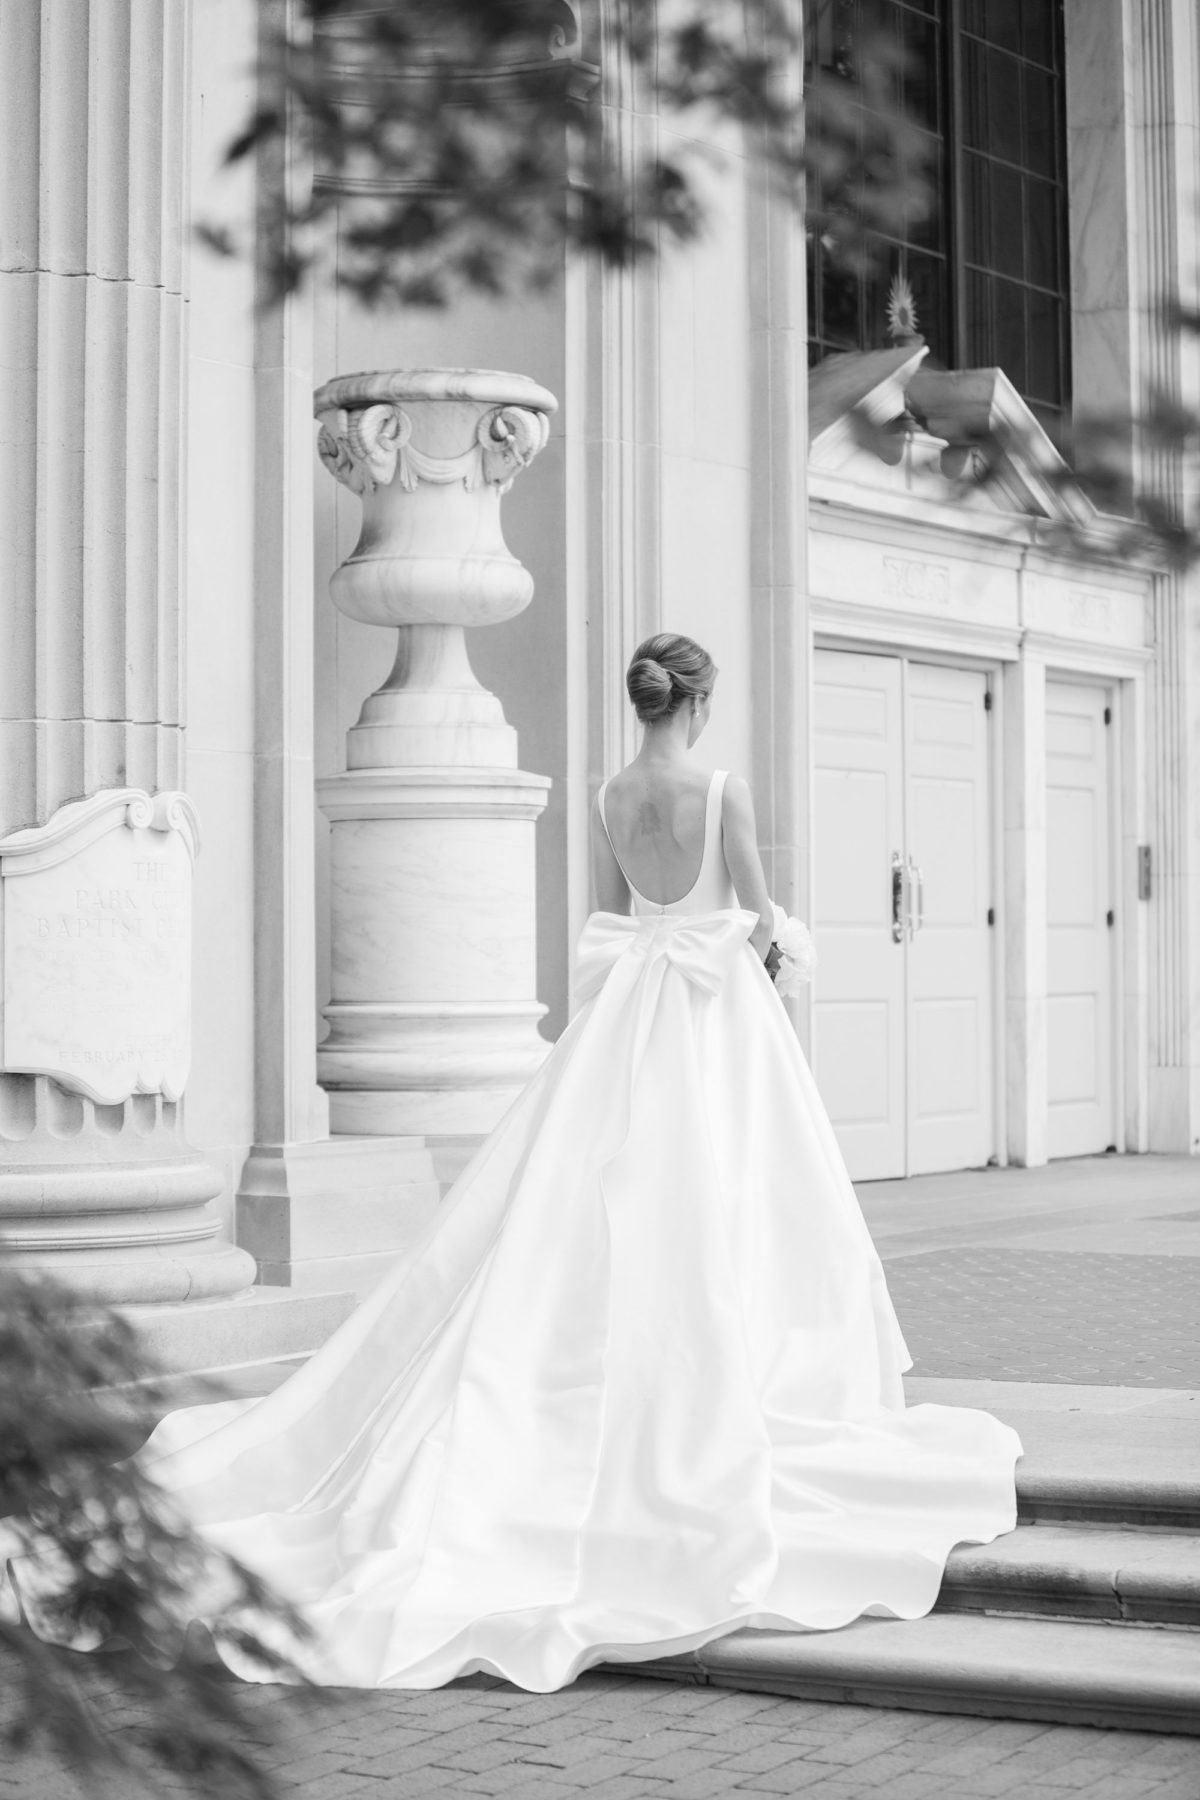 bow wedding dress, sareh nouri brooklyn wedding dress, classic wedding dress, bateau neckline wedding dress, long train wedding dress